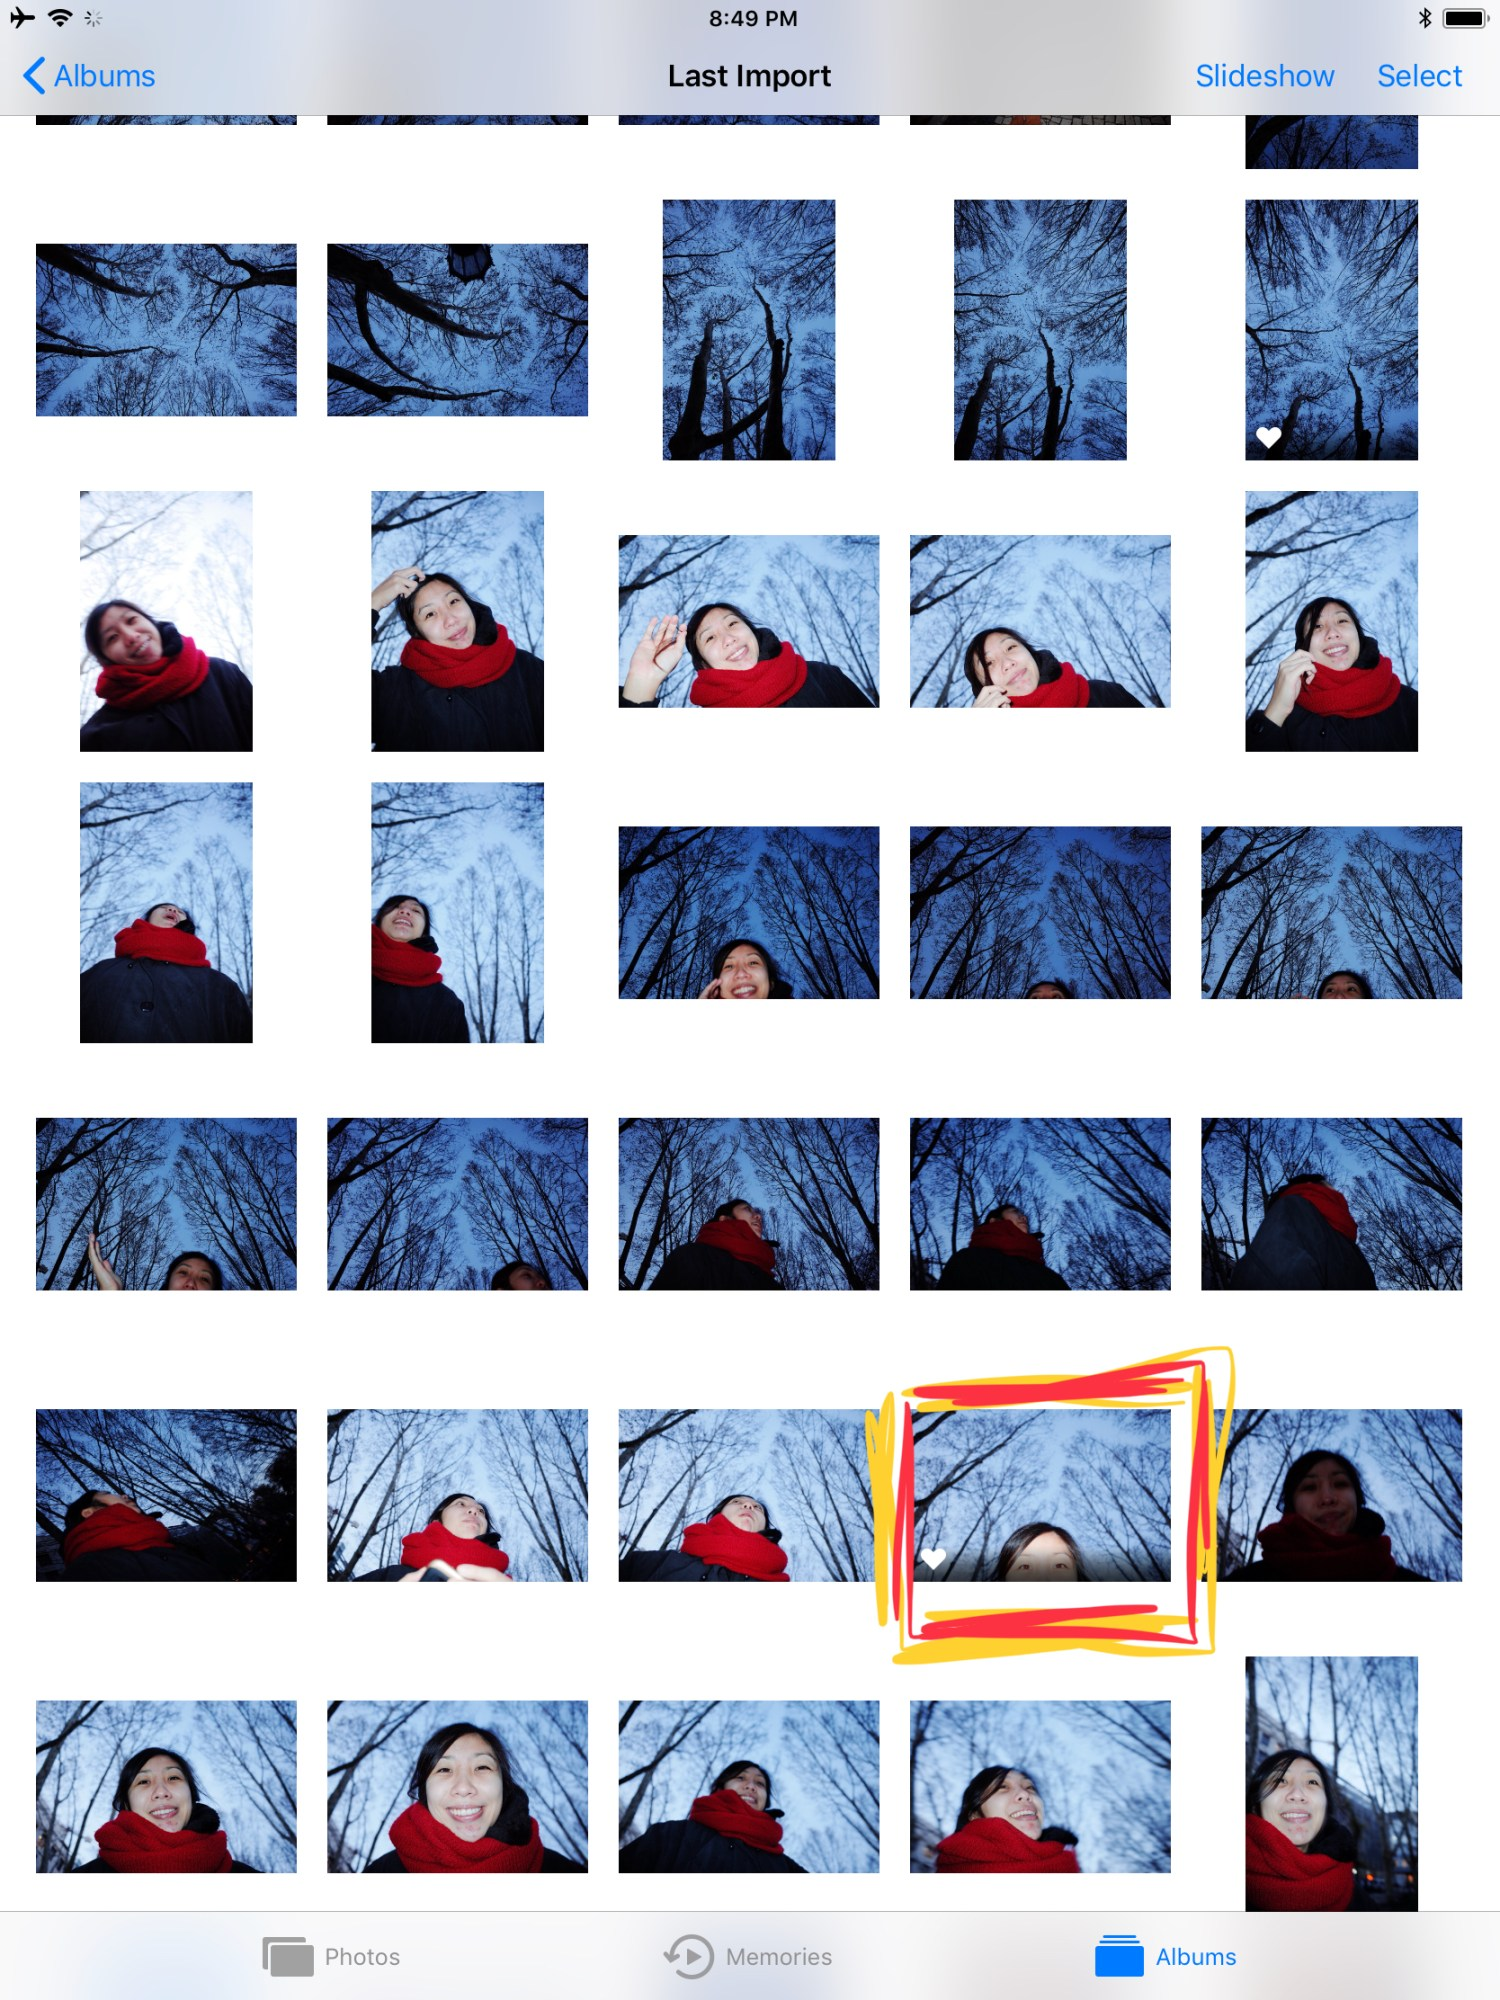 Contact sheet for Cindy eyes, and trees in background. Lisbon, 2018